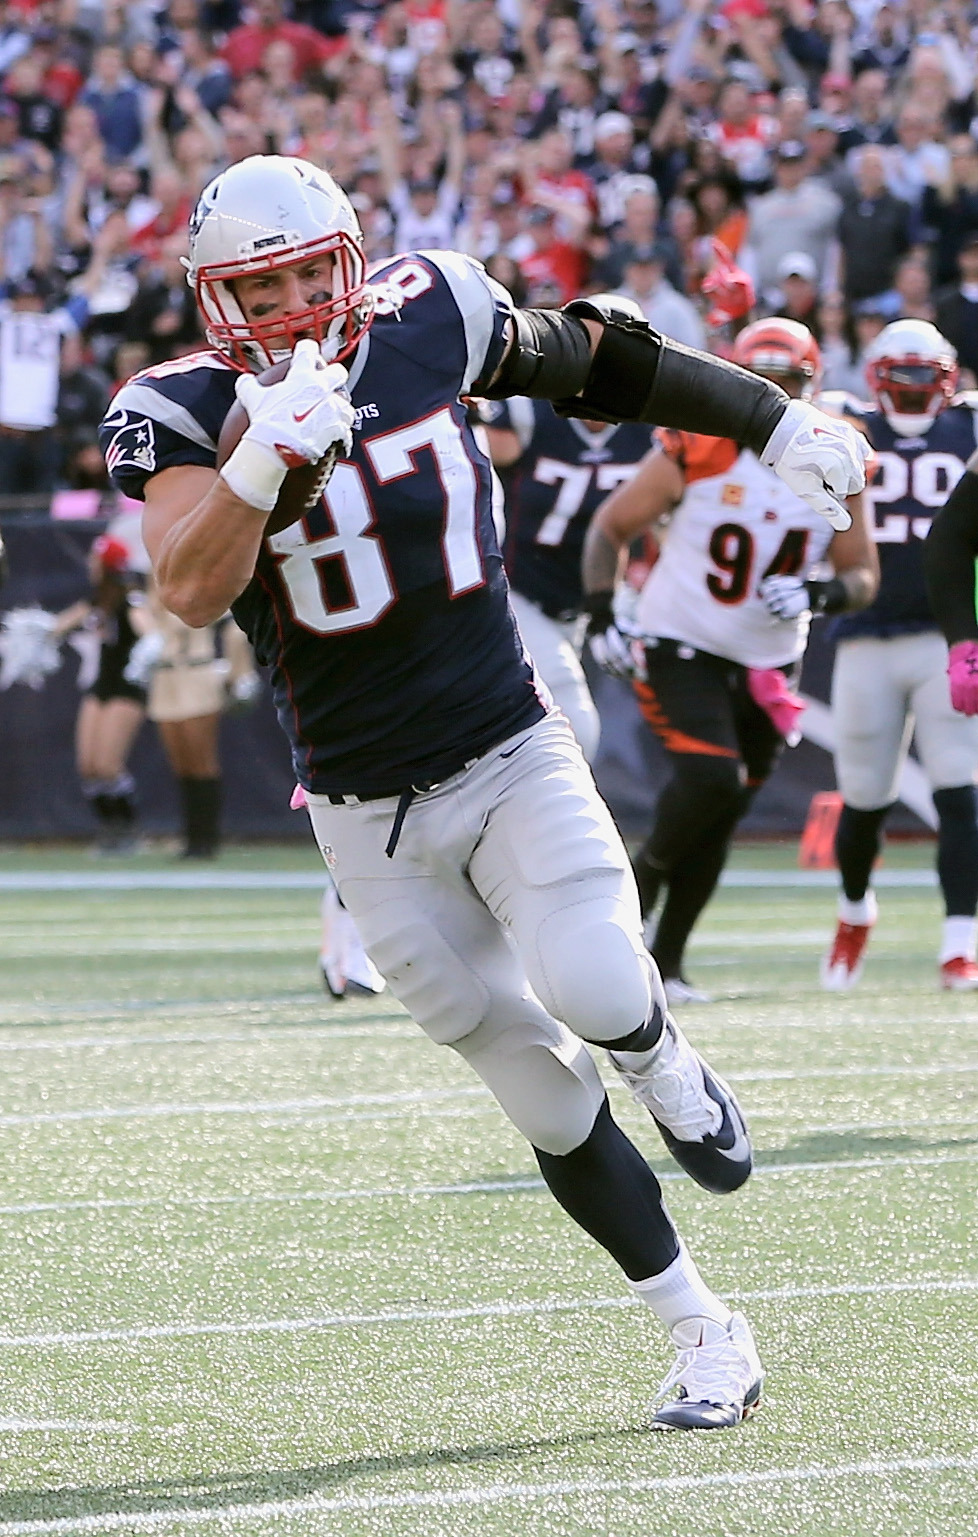 Is Rob Gronkowski on track to becoming the greatest tight end of them all? (Getty Images)